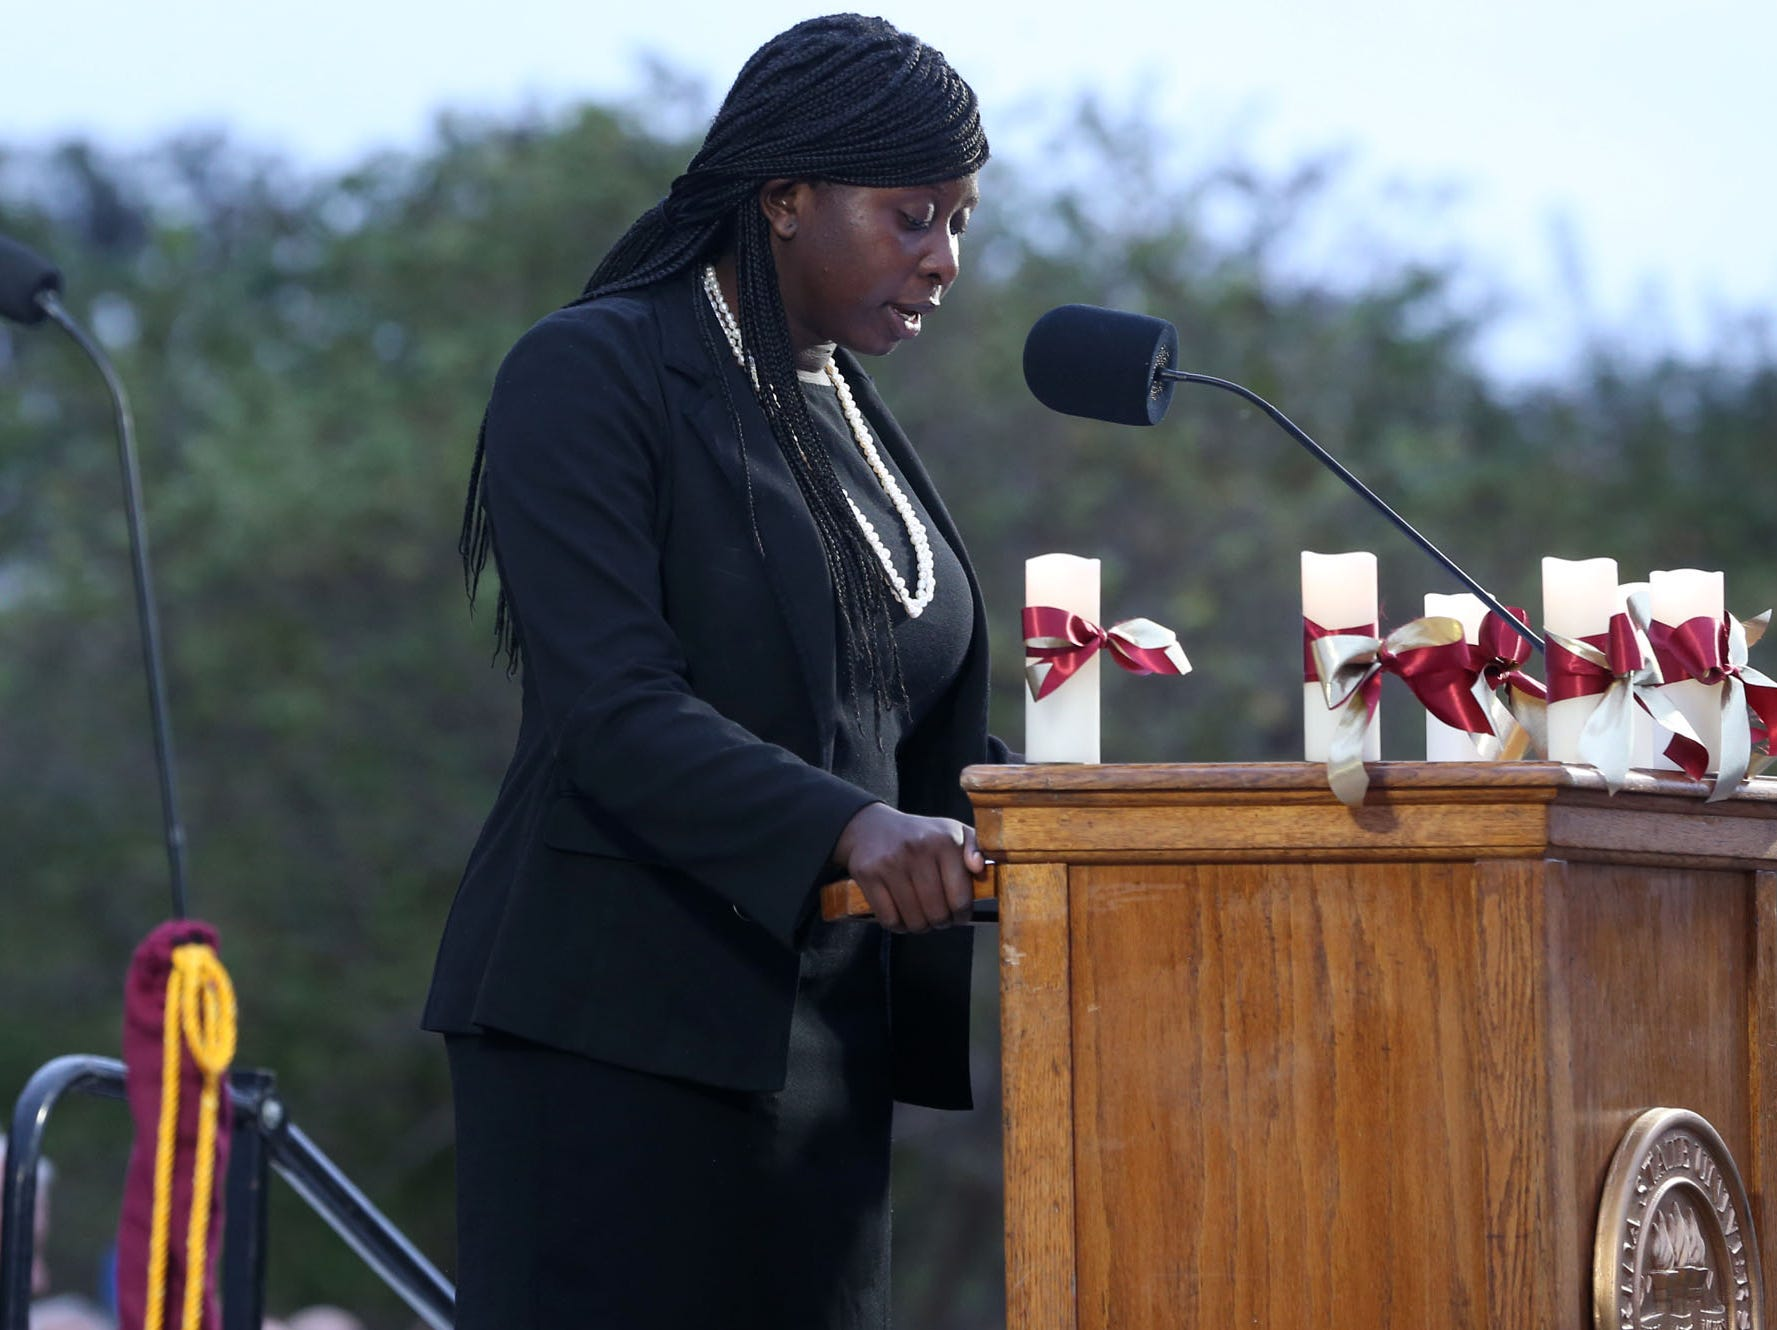 Stacey Pierce, Florida State University Student Body President, speaks at a vigil held at Florida State University in honor of the two lives that were lost on the night of the shooting at Hot Yoga Tallahassee, on Nov. 4, 2018.